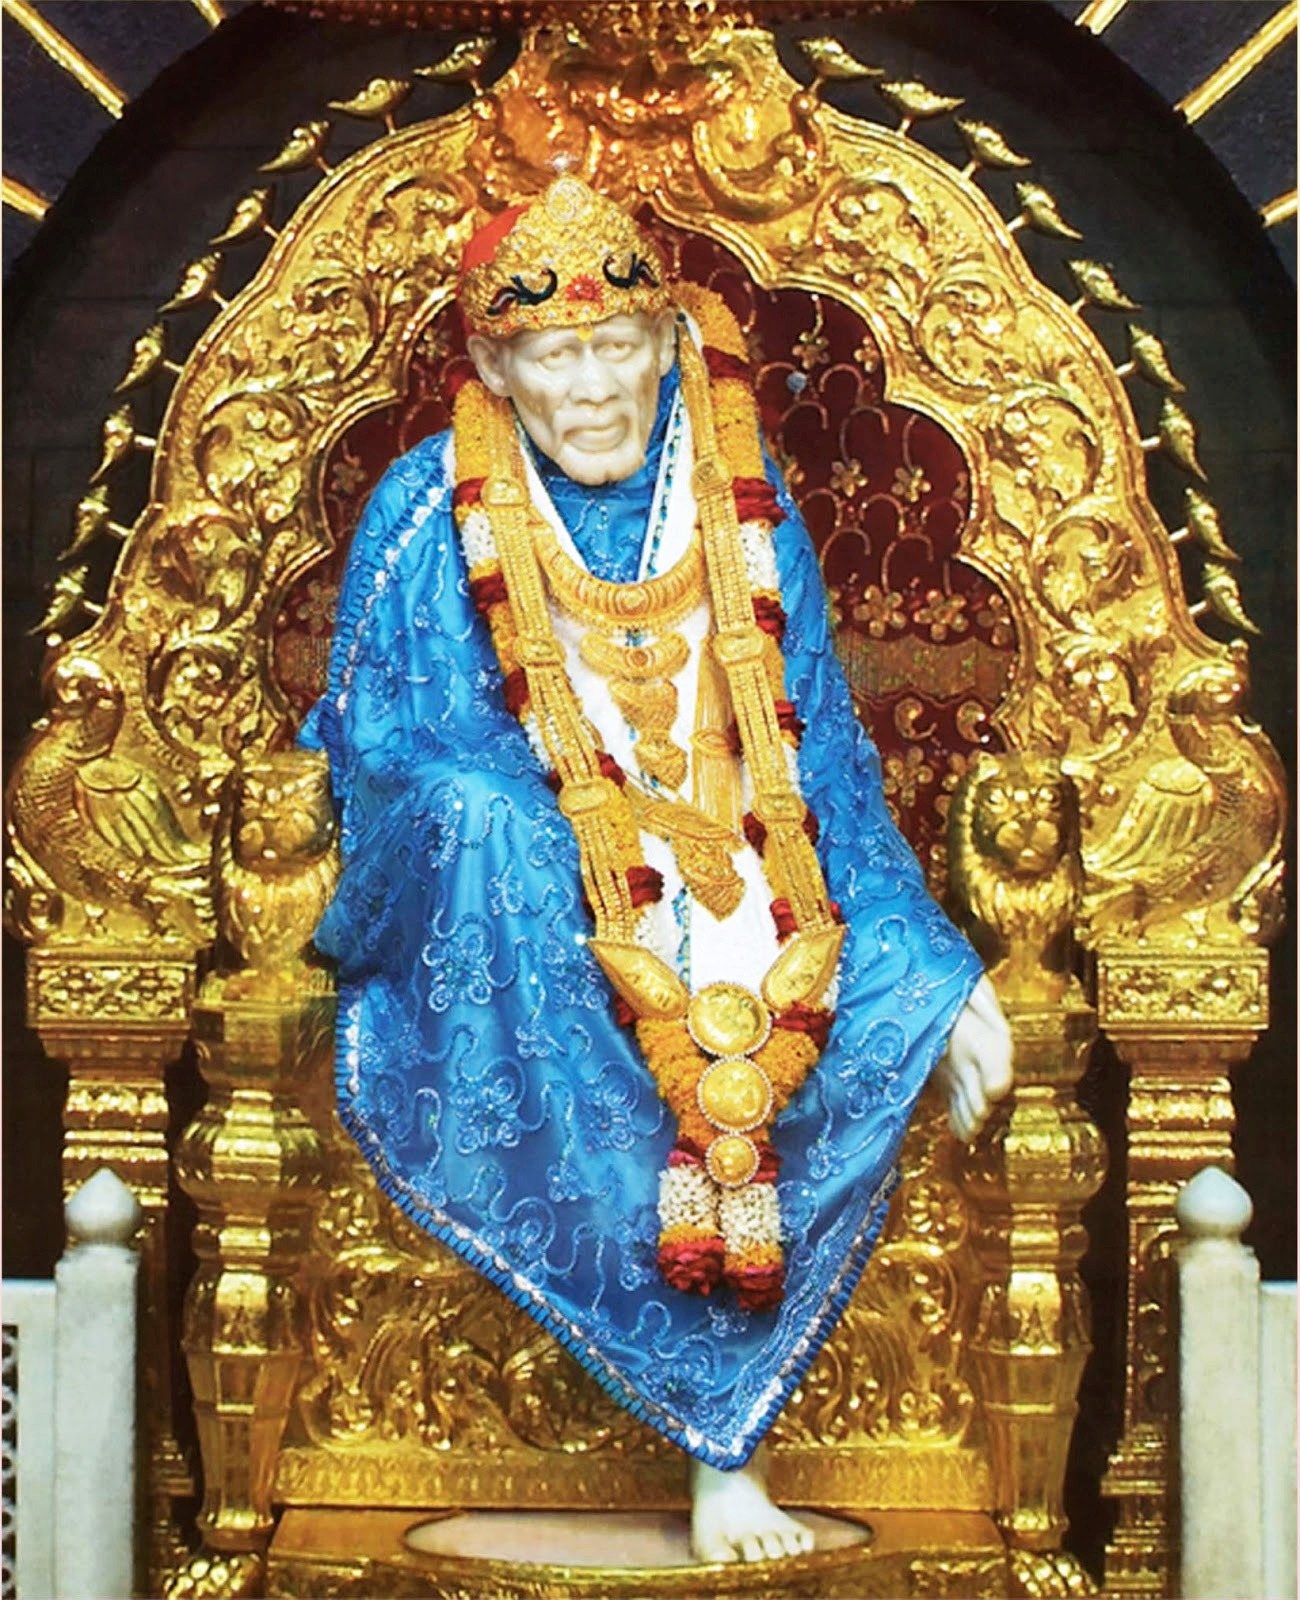 Iphone 4 Live Wallpaper Download Shirdi Sai Baba Hd Wallpapers For Mobile Gallery